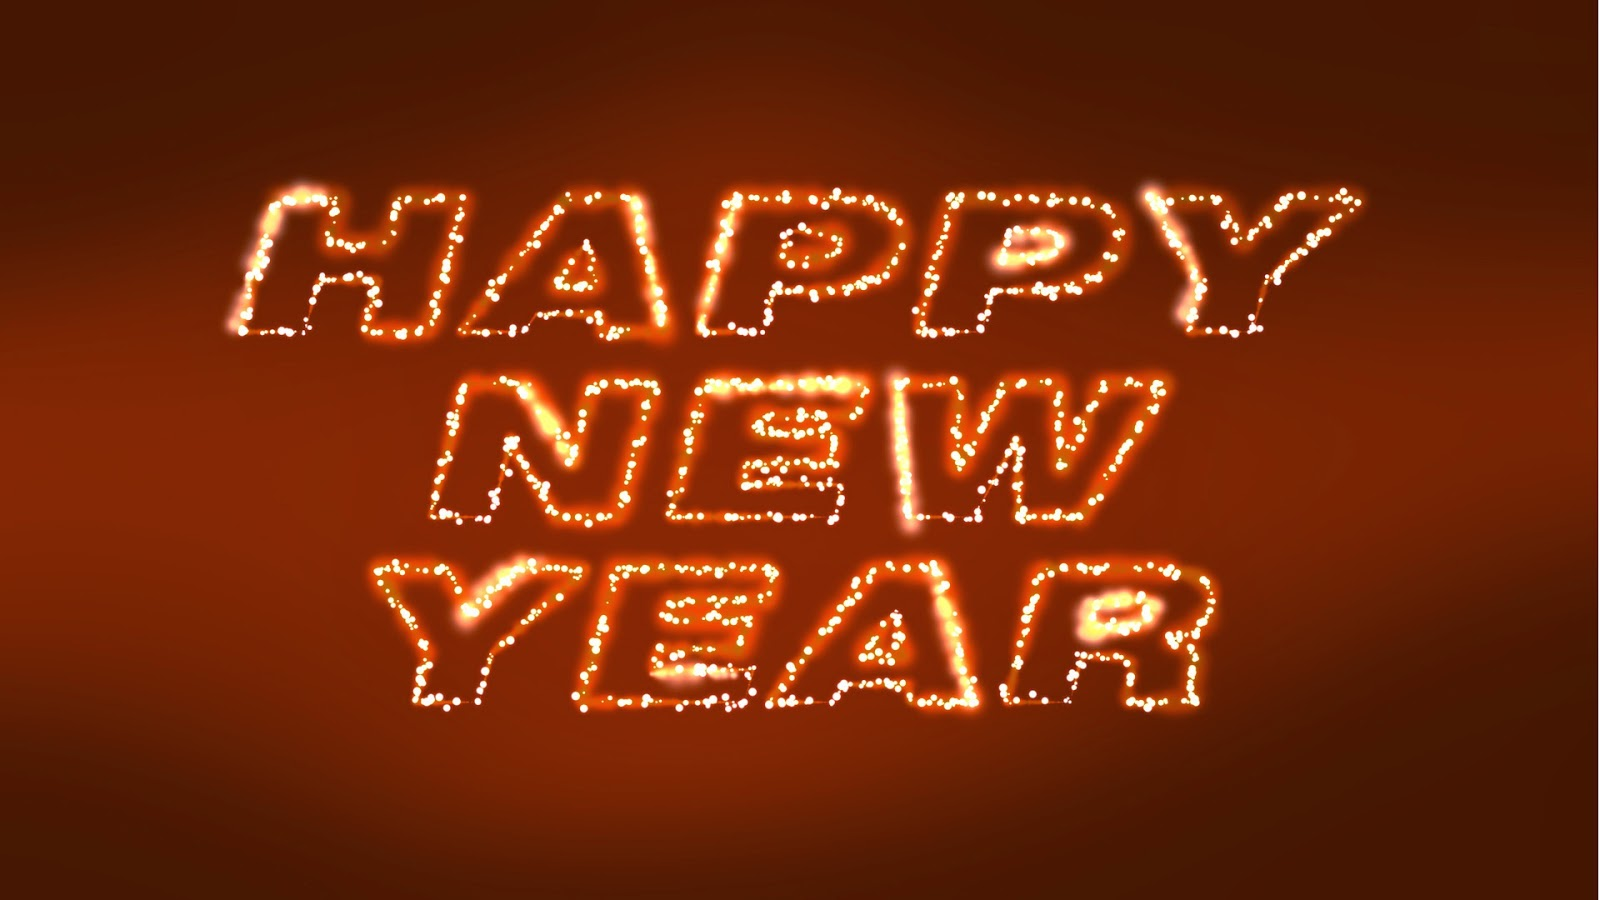 Happy New Year Hd Wallpapers 2015 Free New Year Images Happy New